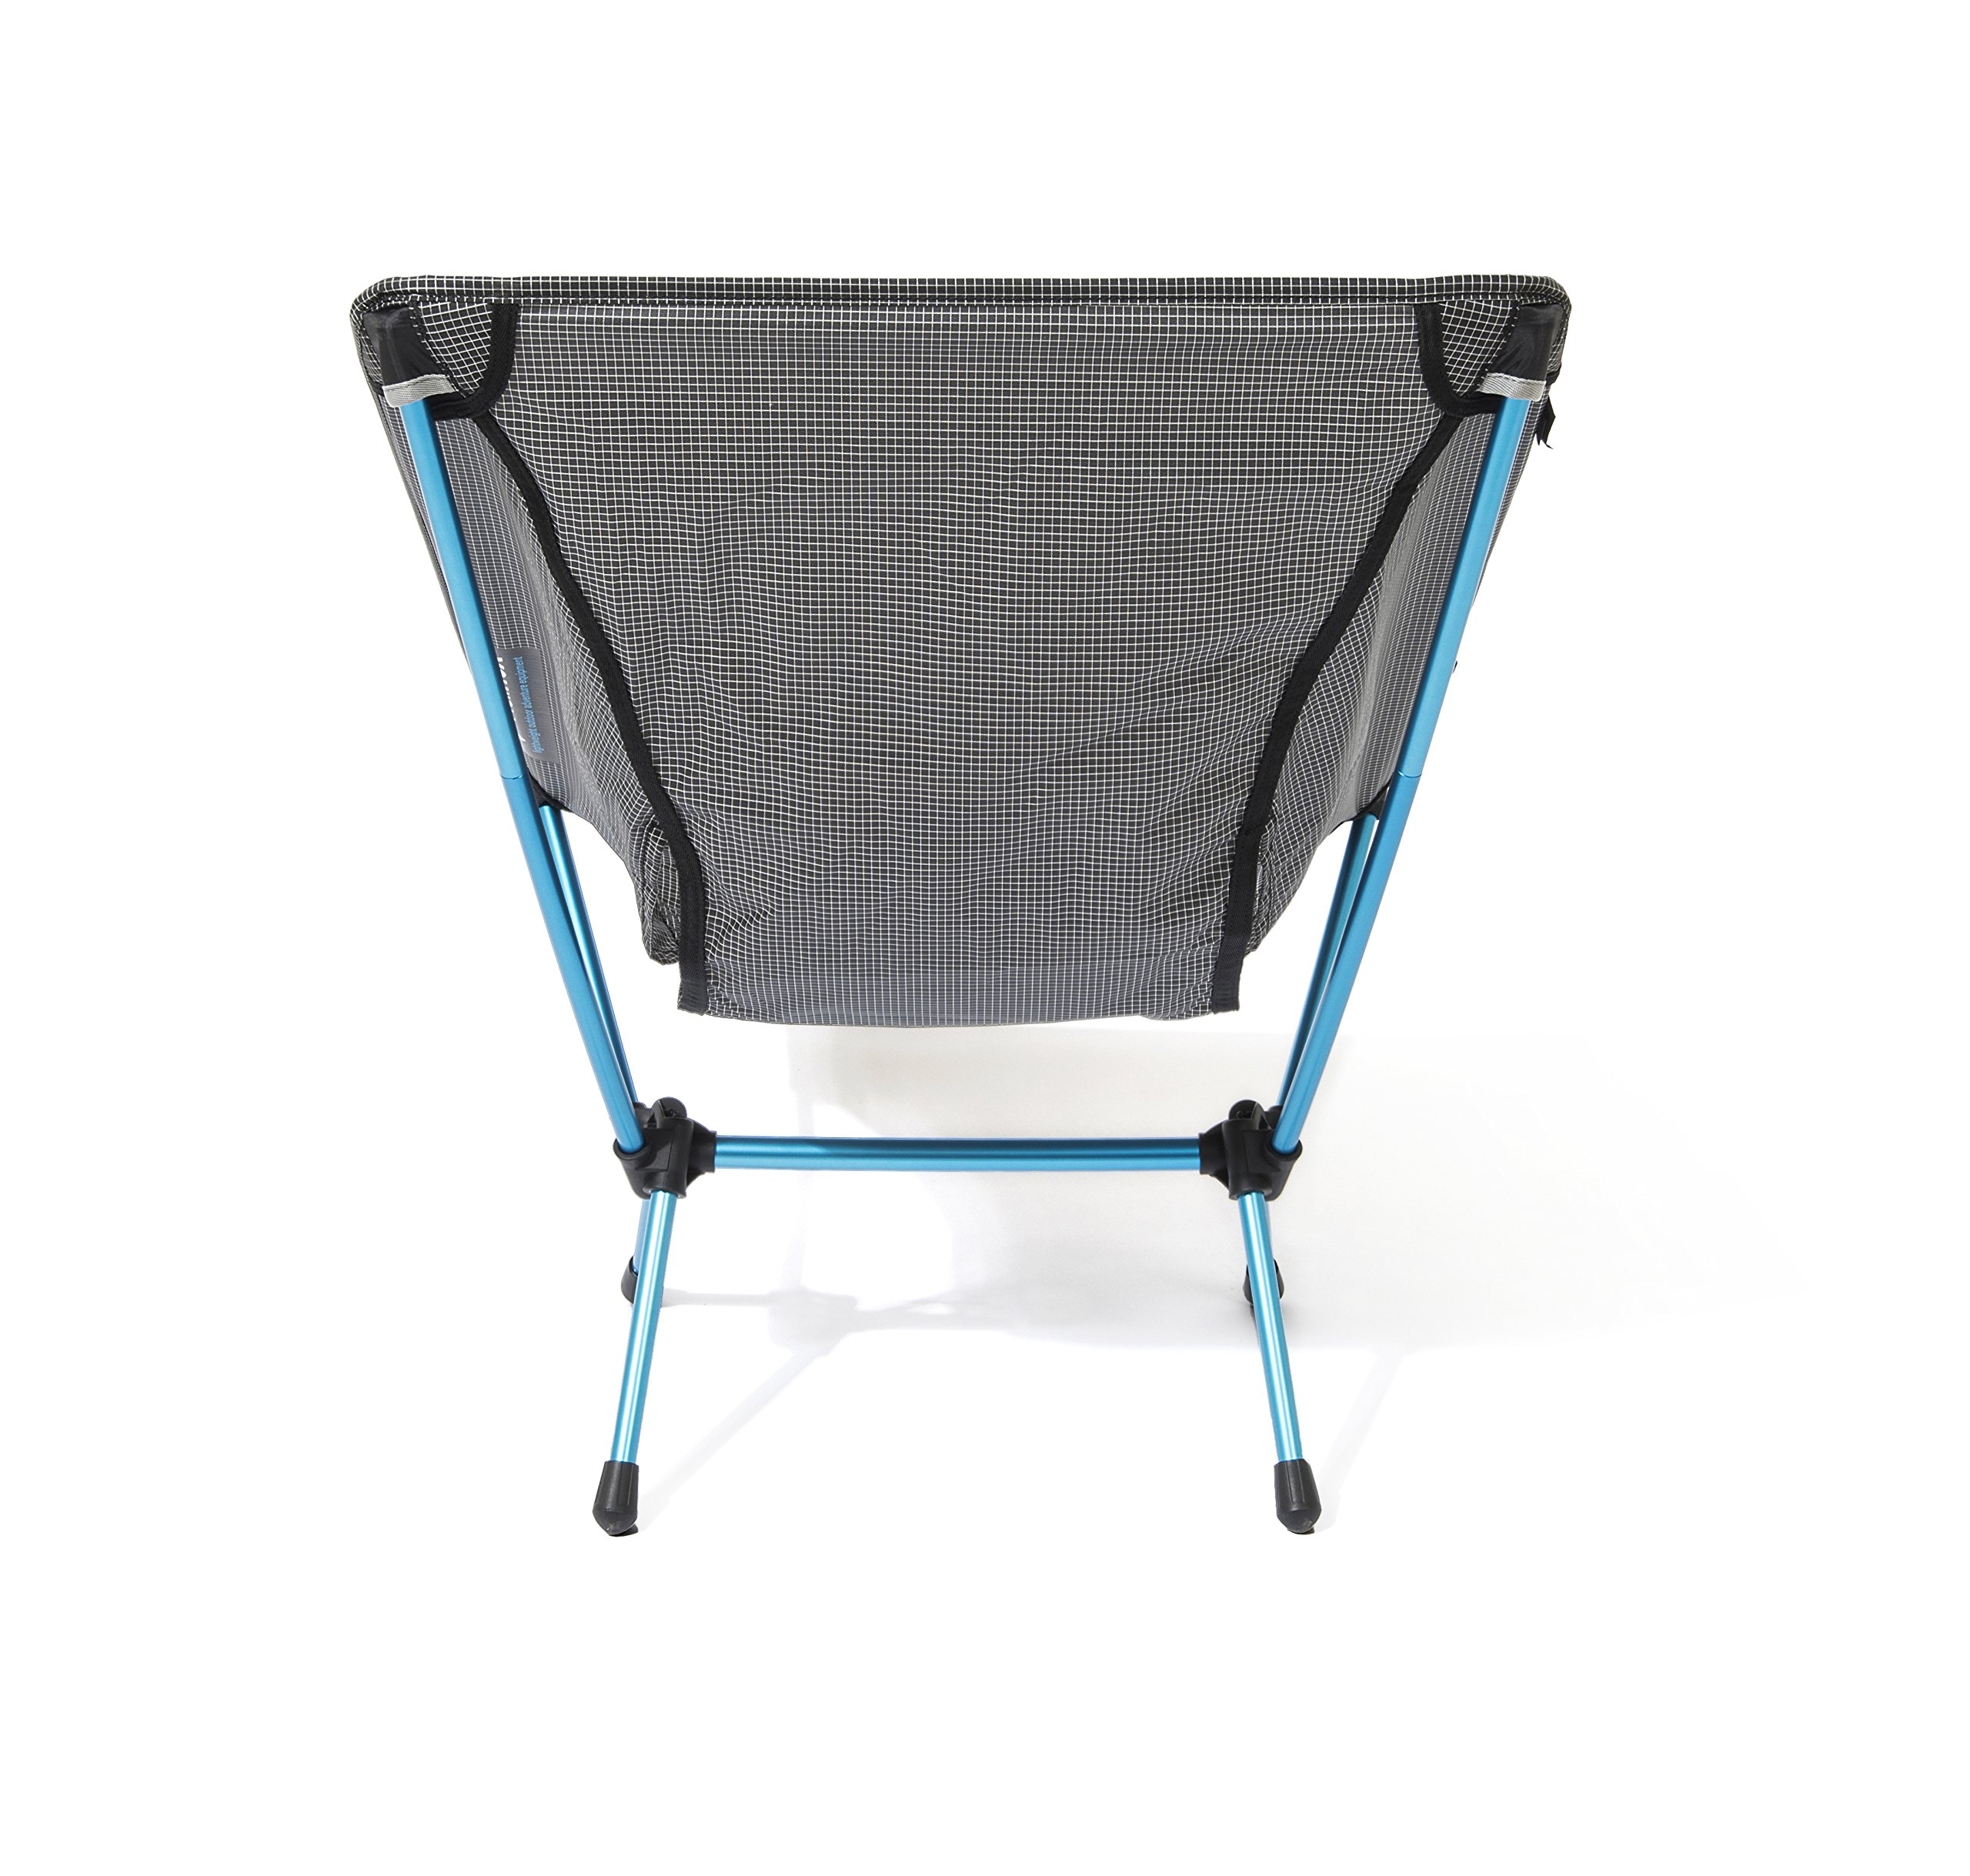 Helinox - Chair Zero Camping Chair, Black by Big Agnes (Image #2)